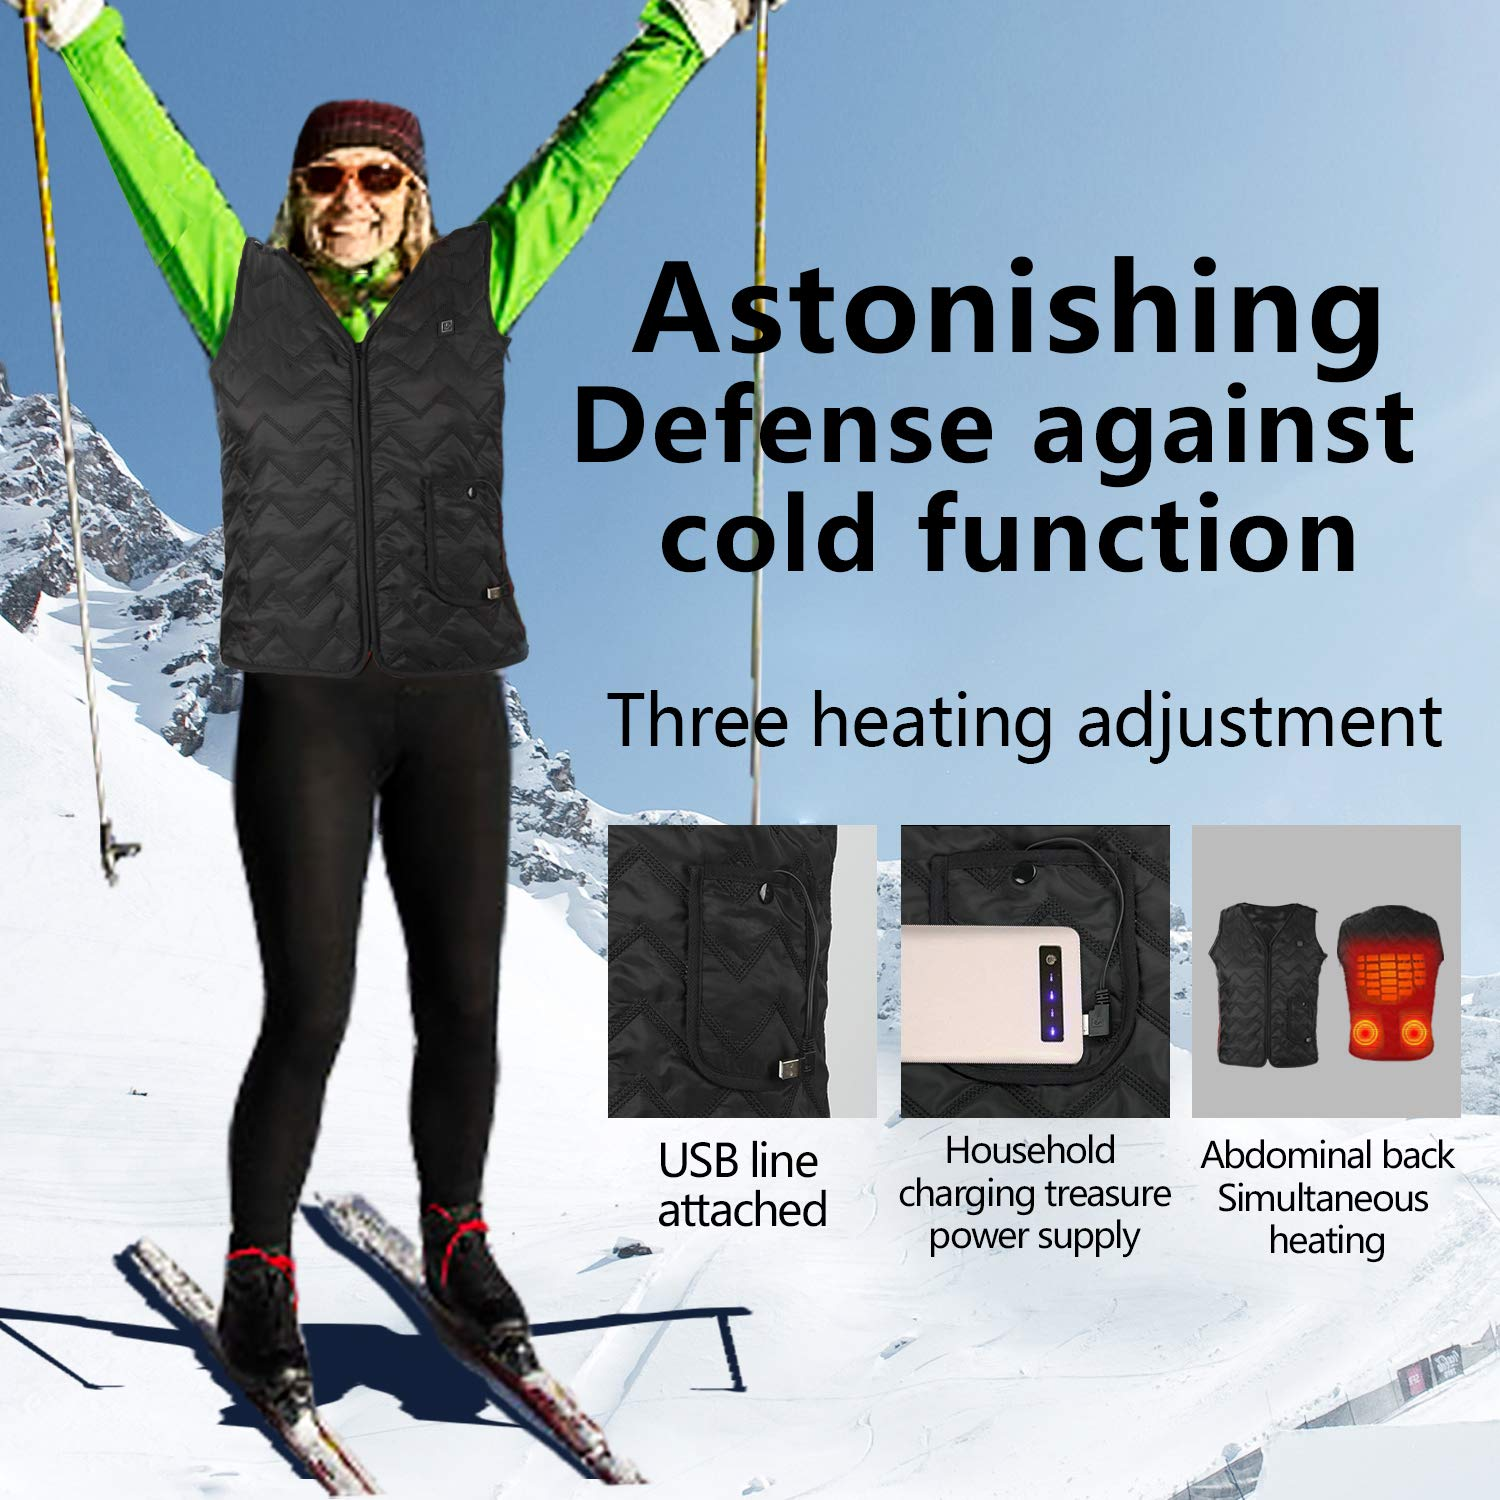 Heating Electric Vest USB Charging Heated Vest Cold-Proof Heating Clothes Washable Four Sizes Adjustment No Battery Pack Included Black by YZFDBSX (Image #3)